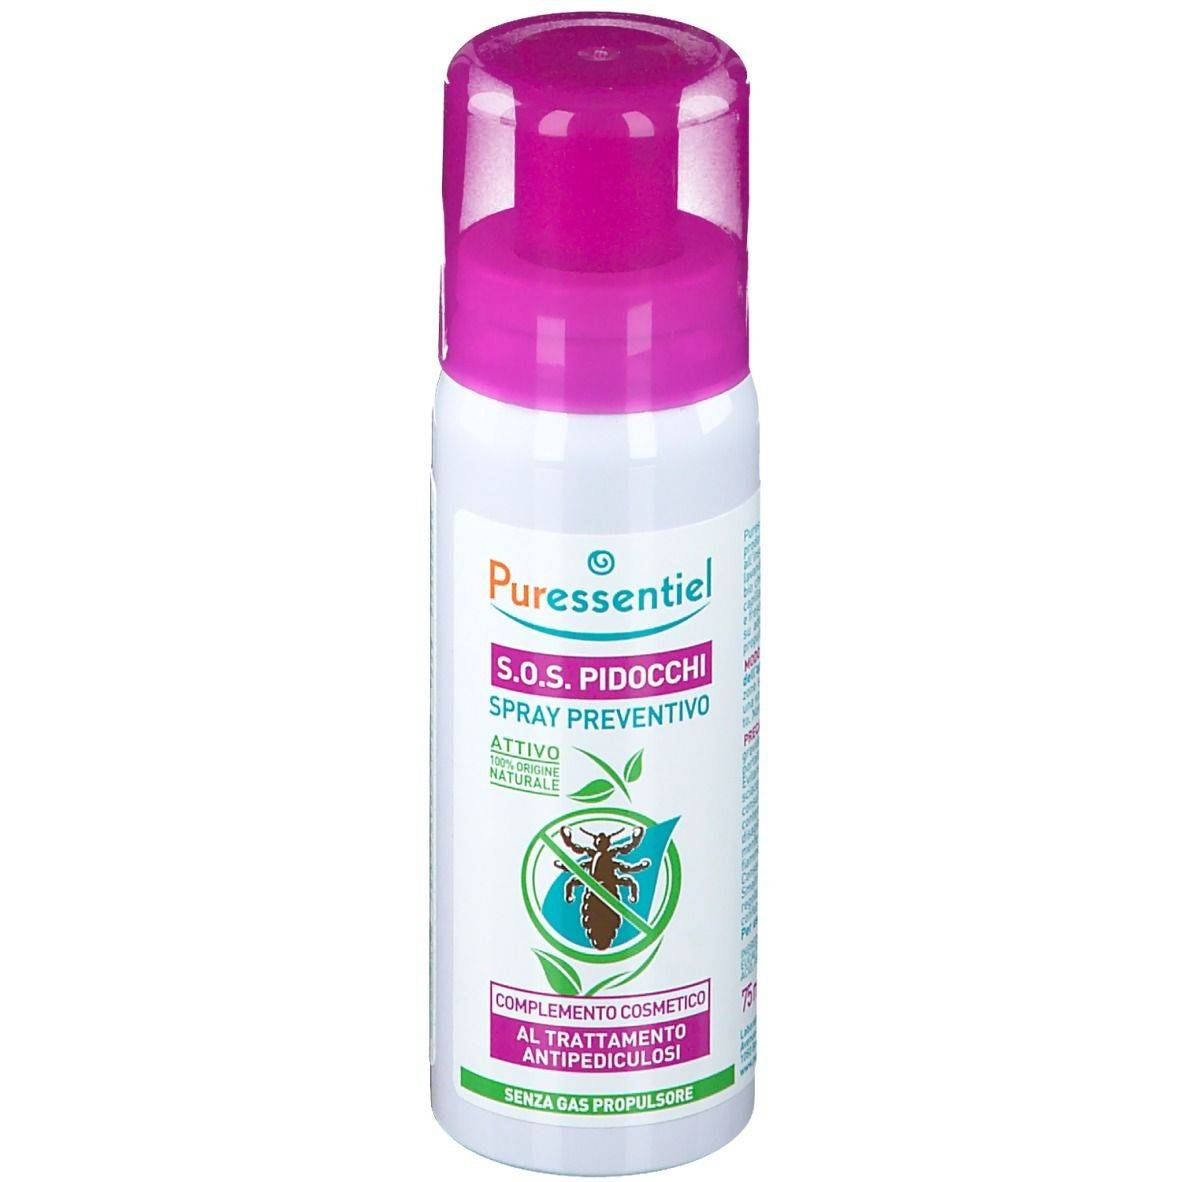 Puressentiel Puressential S.O.S. Pidocchi Spray Preventivo 75 ml Spray